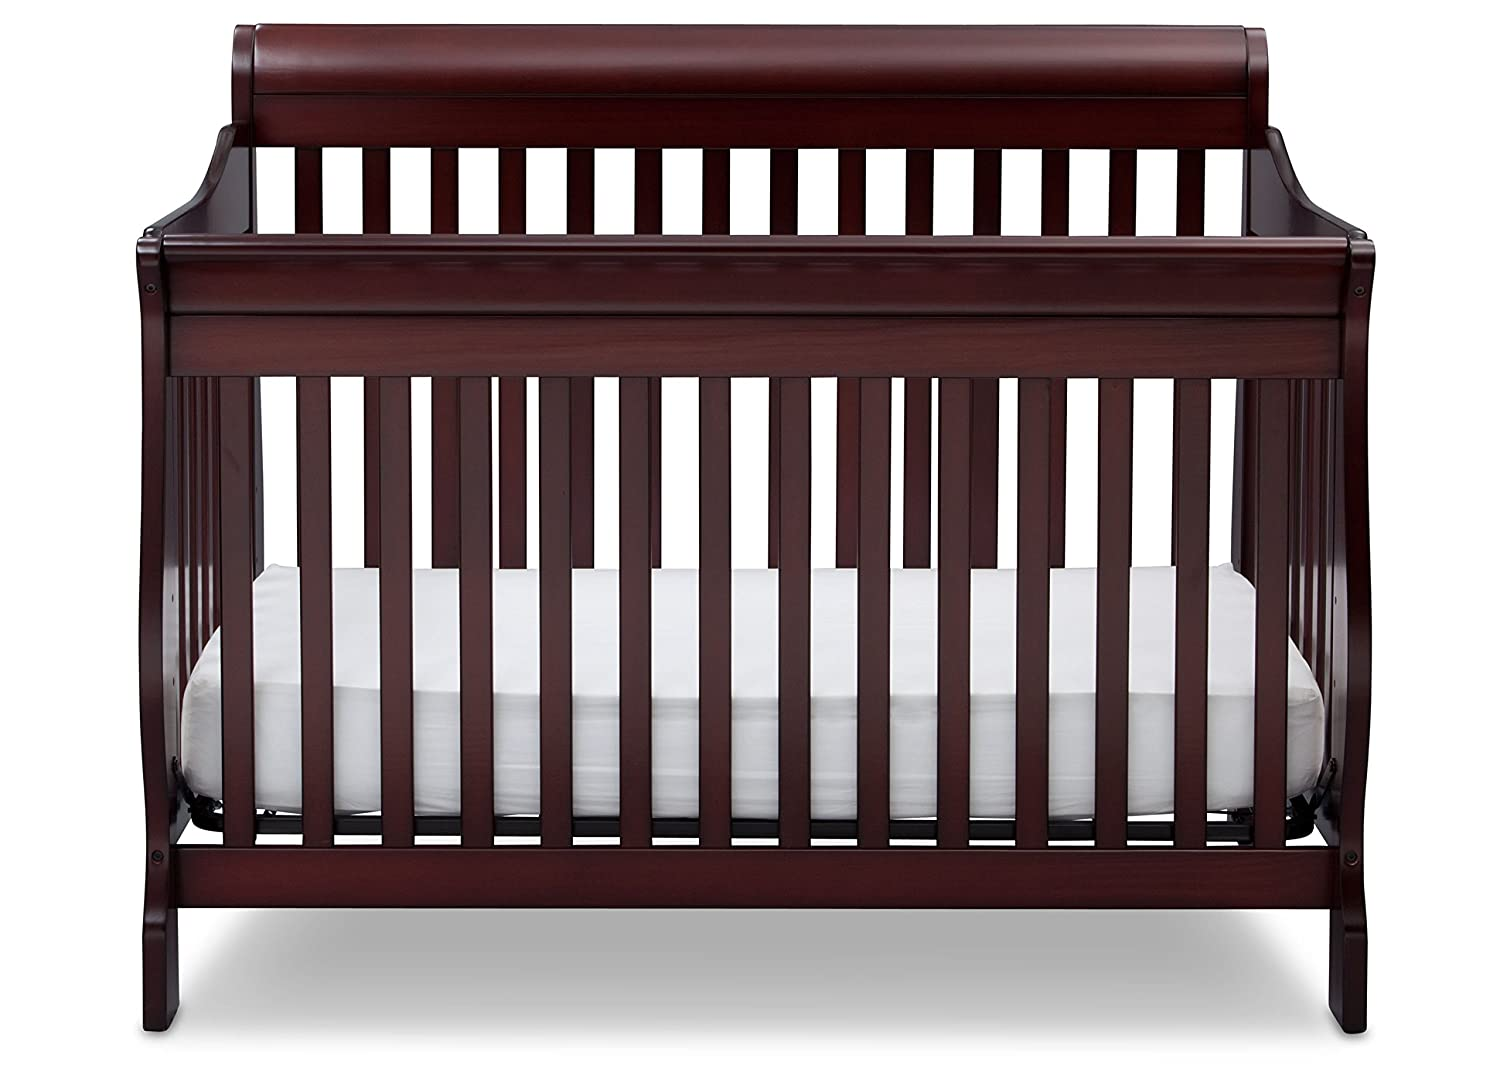 Charming Amazon.com : Delta Children Canton 4 In 1 Convertible Crib, Espresso Cherry  : Baby